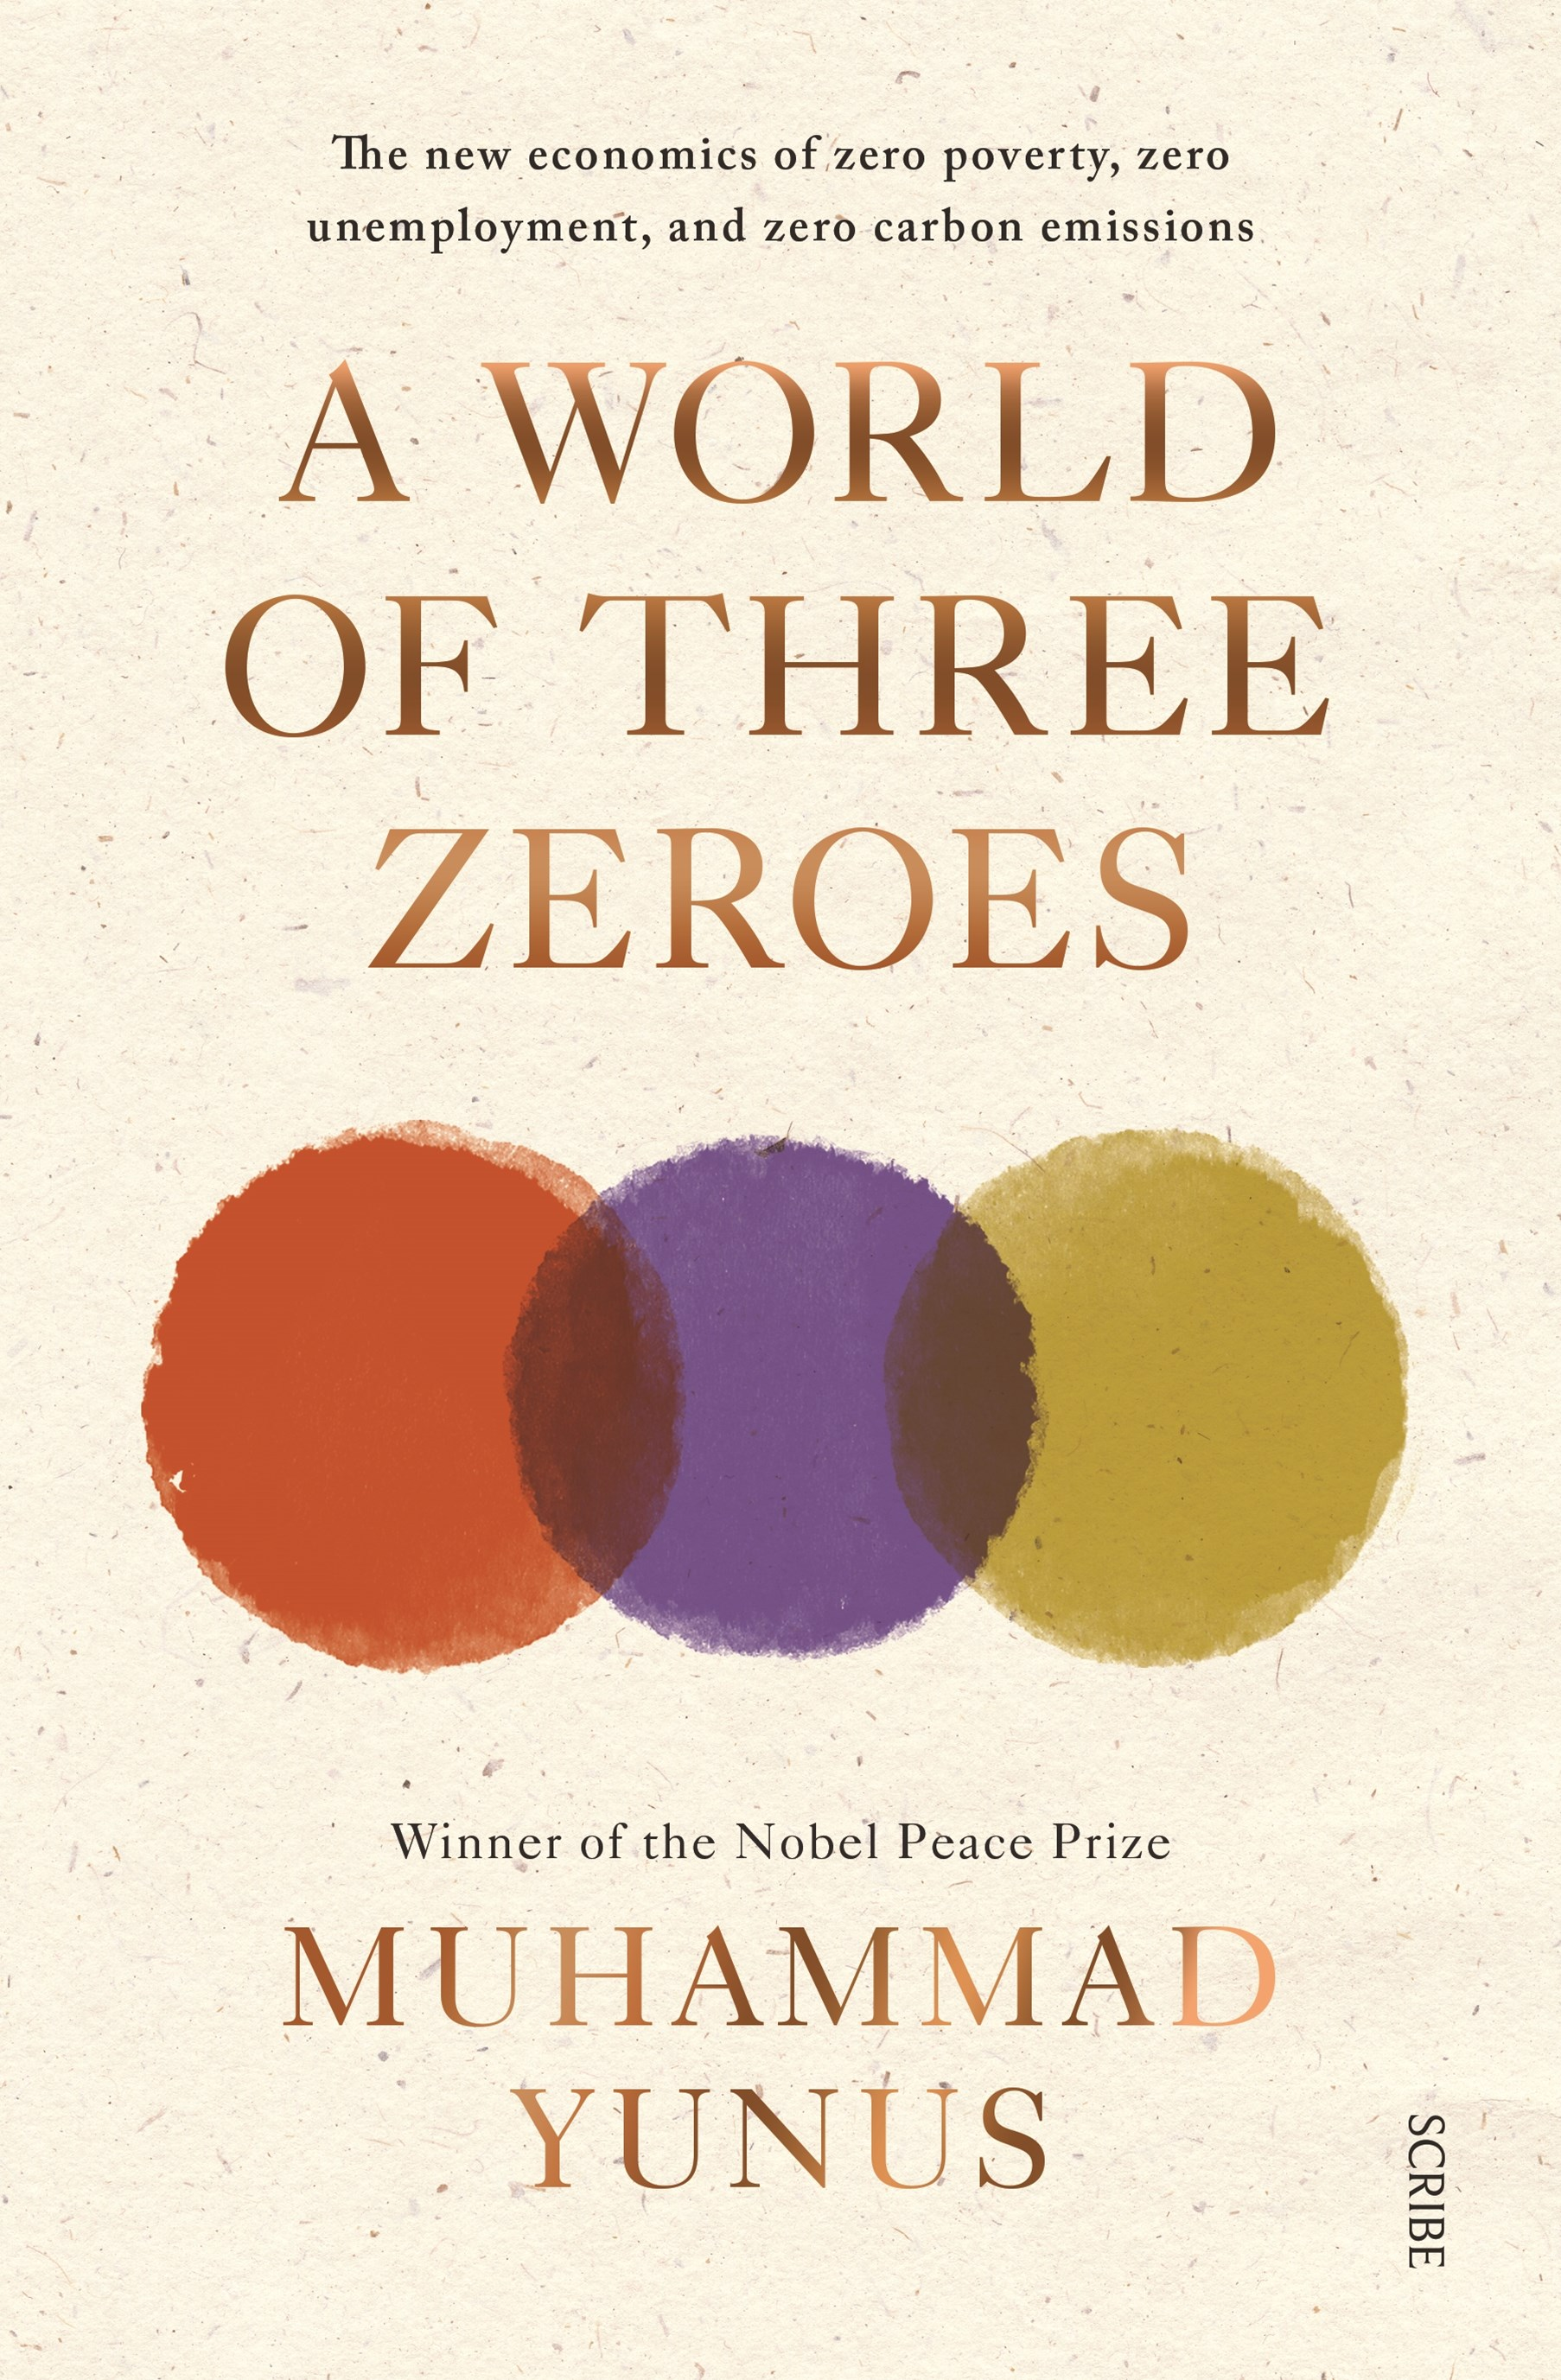 A World of Three Zeroes: The New Economics of Zero Poverty, Zero Unemployment, and Zero Carbon Emis